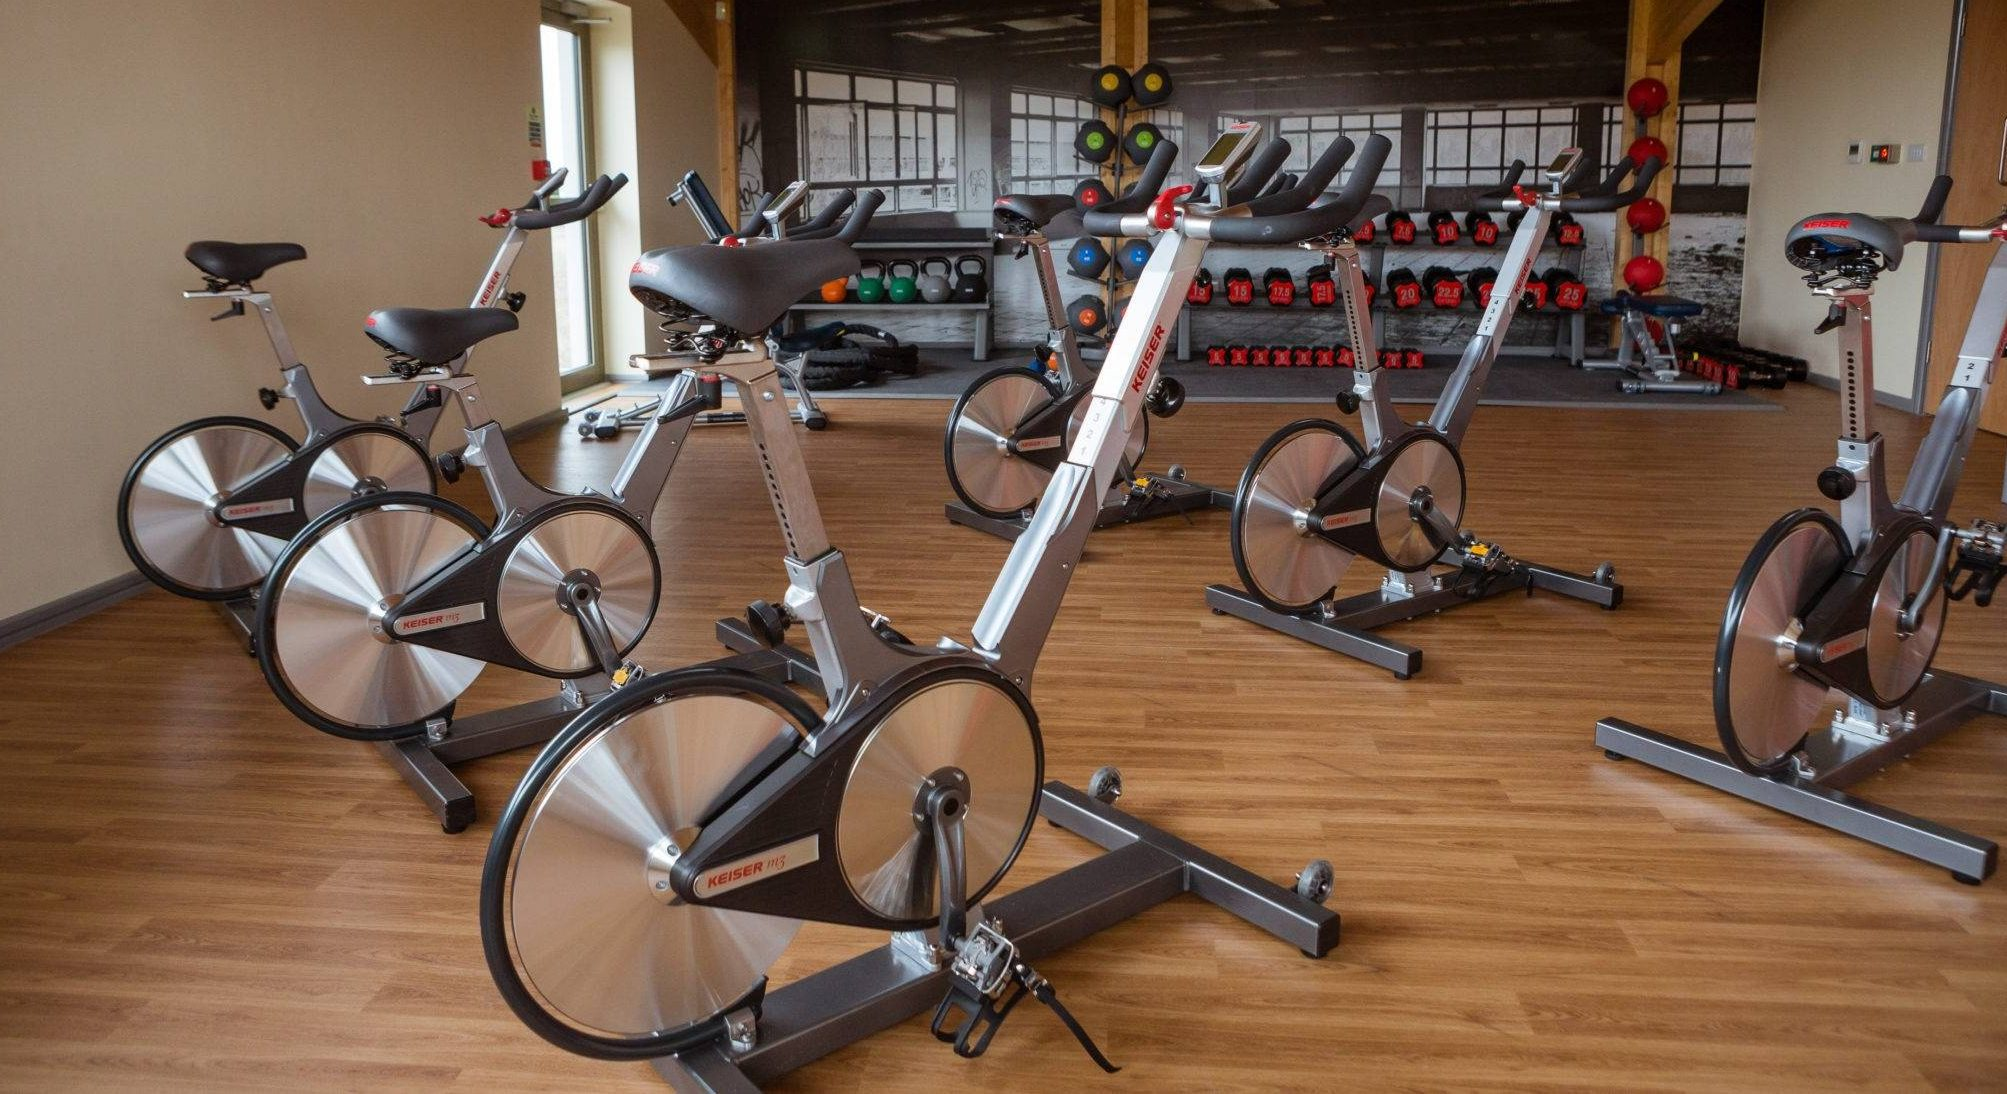 https://silverbay.co.uk/wp-content/uploads/2016/12/silver-bay-holiday-village-anglesey-spa-and-leisure-spinning-bikes-gym-e1616088151787.jpg